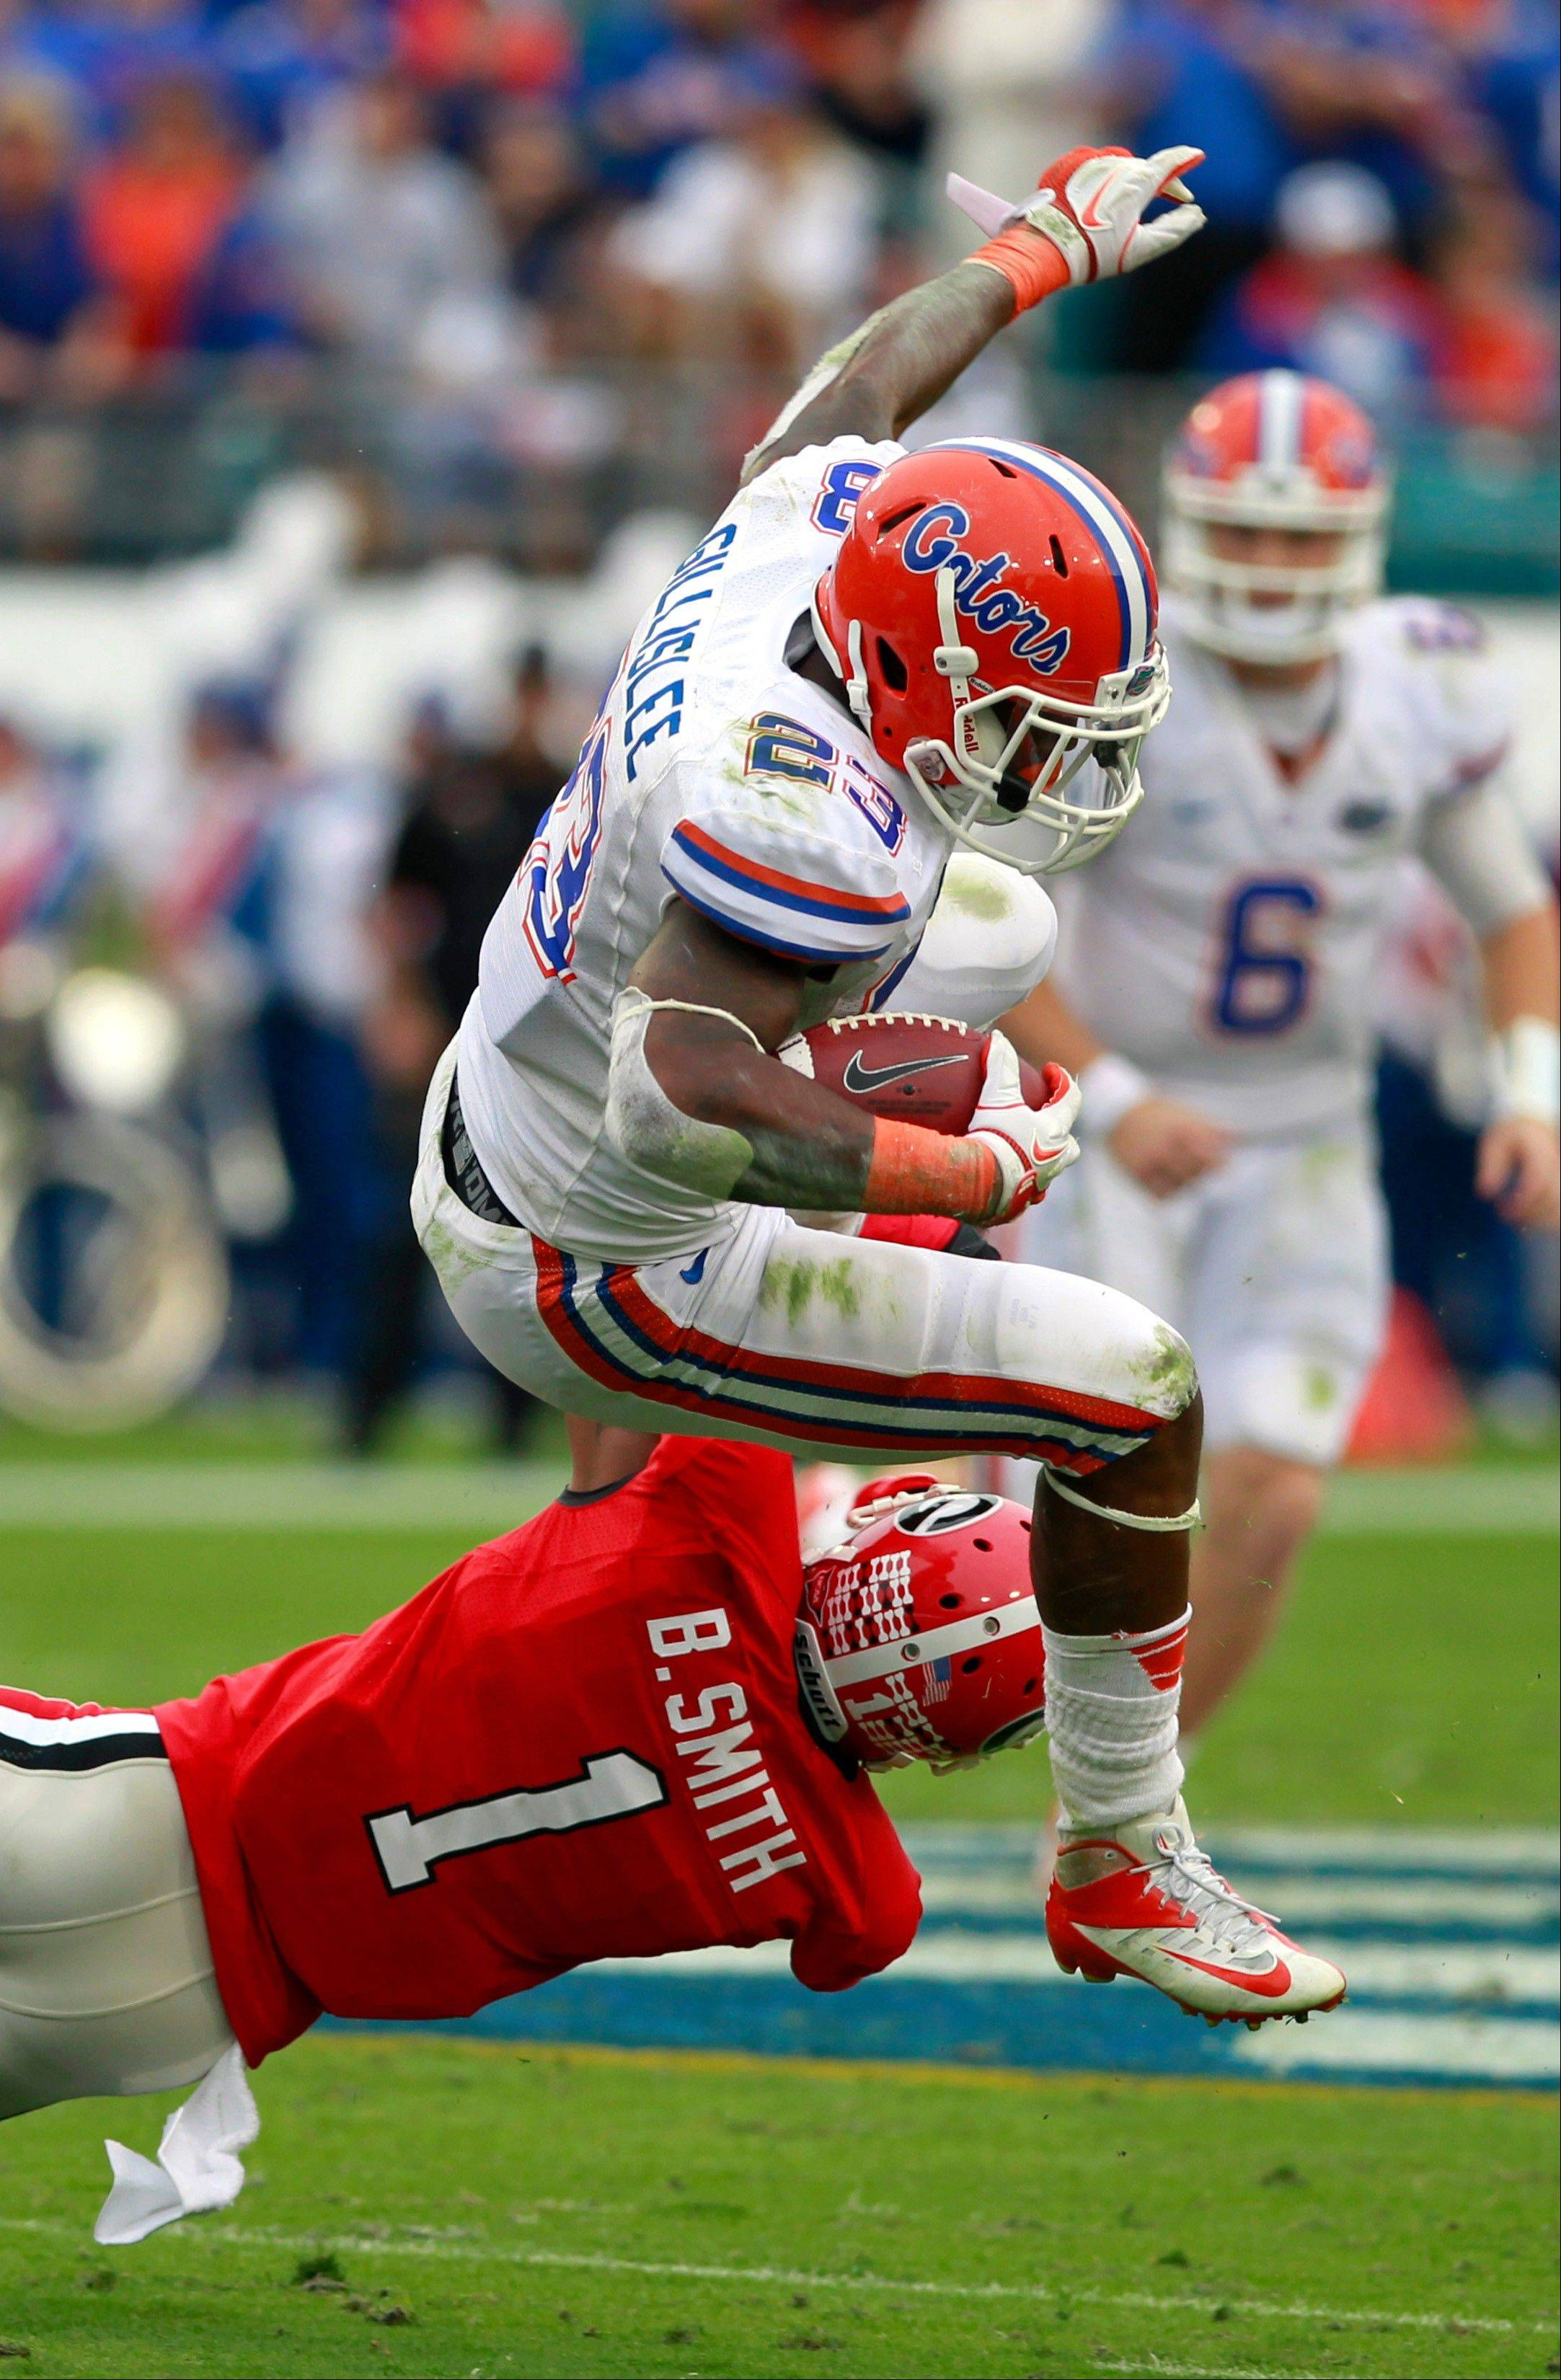 Florida running back Mike Gillislee (23) is upended by Georgia cornerback Branden Smith (1) during the first half of an NCAA college football game on Saturday, Oct. 27, 2012, in Jacksonville, Fla. (AP Photo/John Raoux)